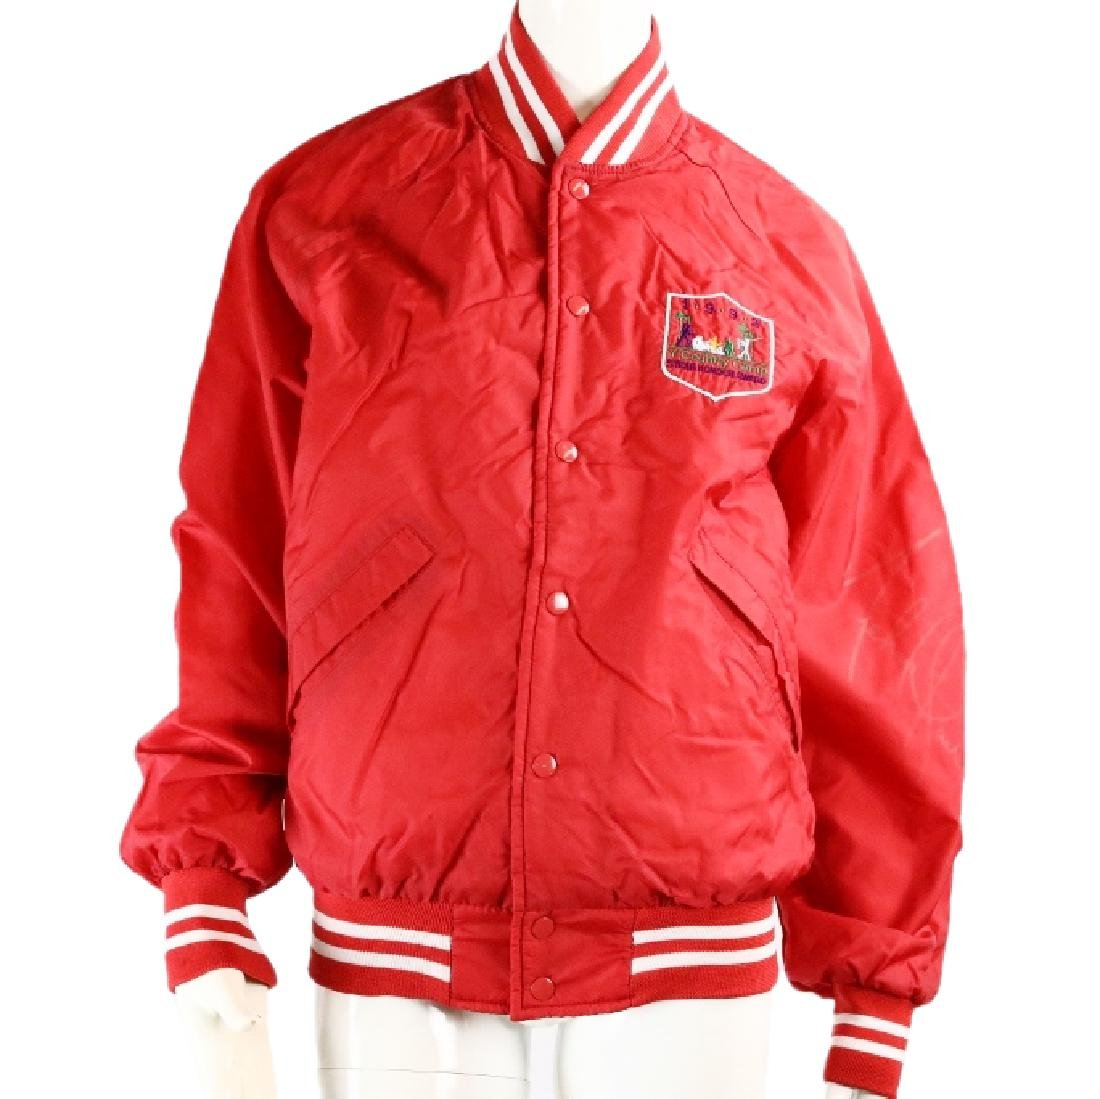 Michael Jackson's Signed Jacket From of Dr. Klein